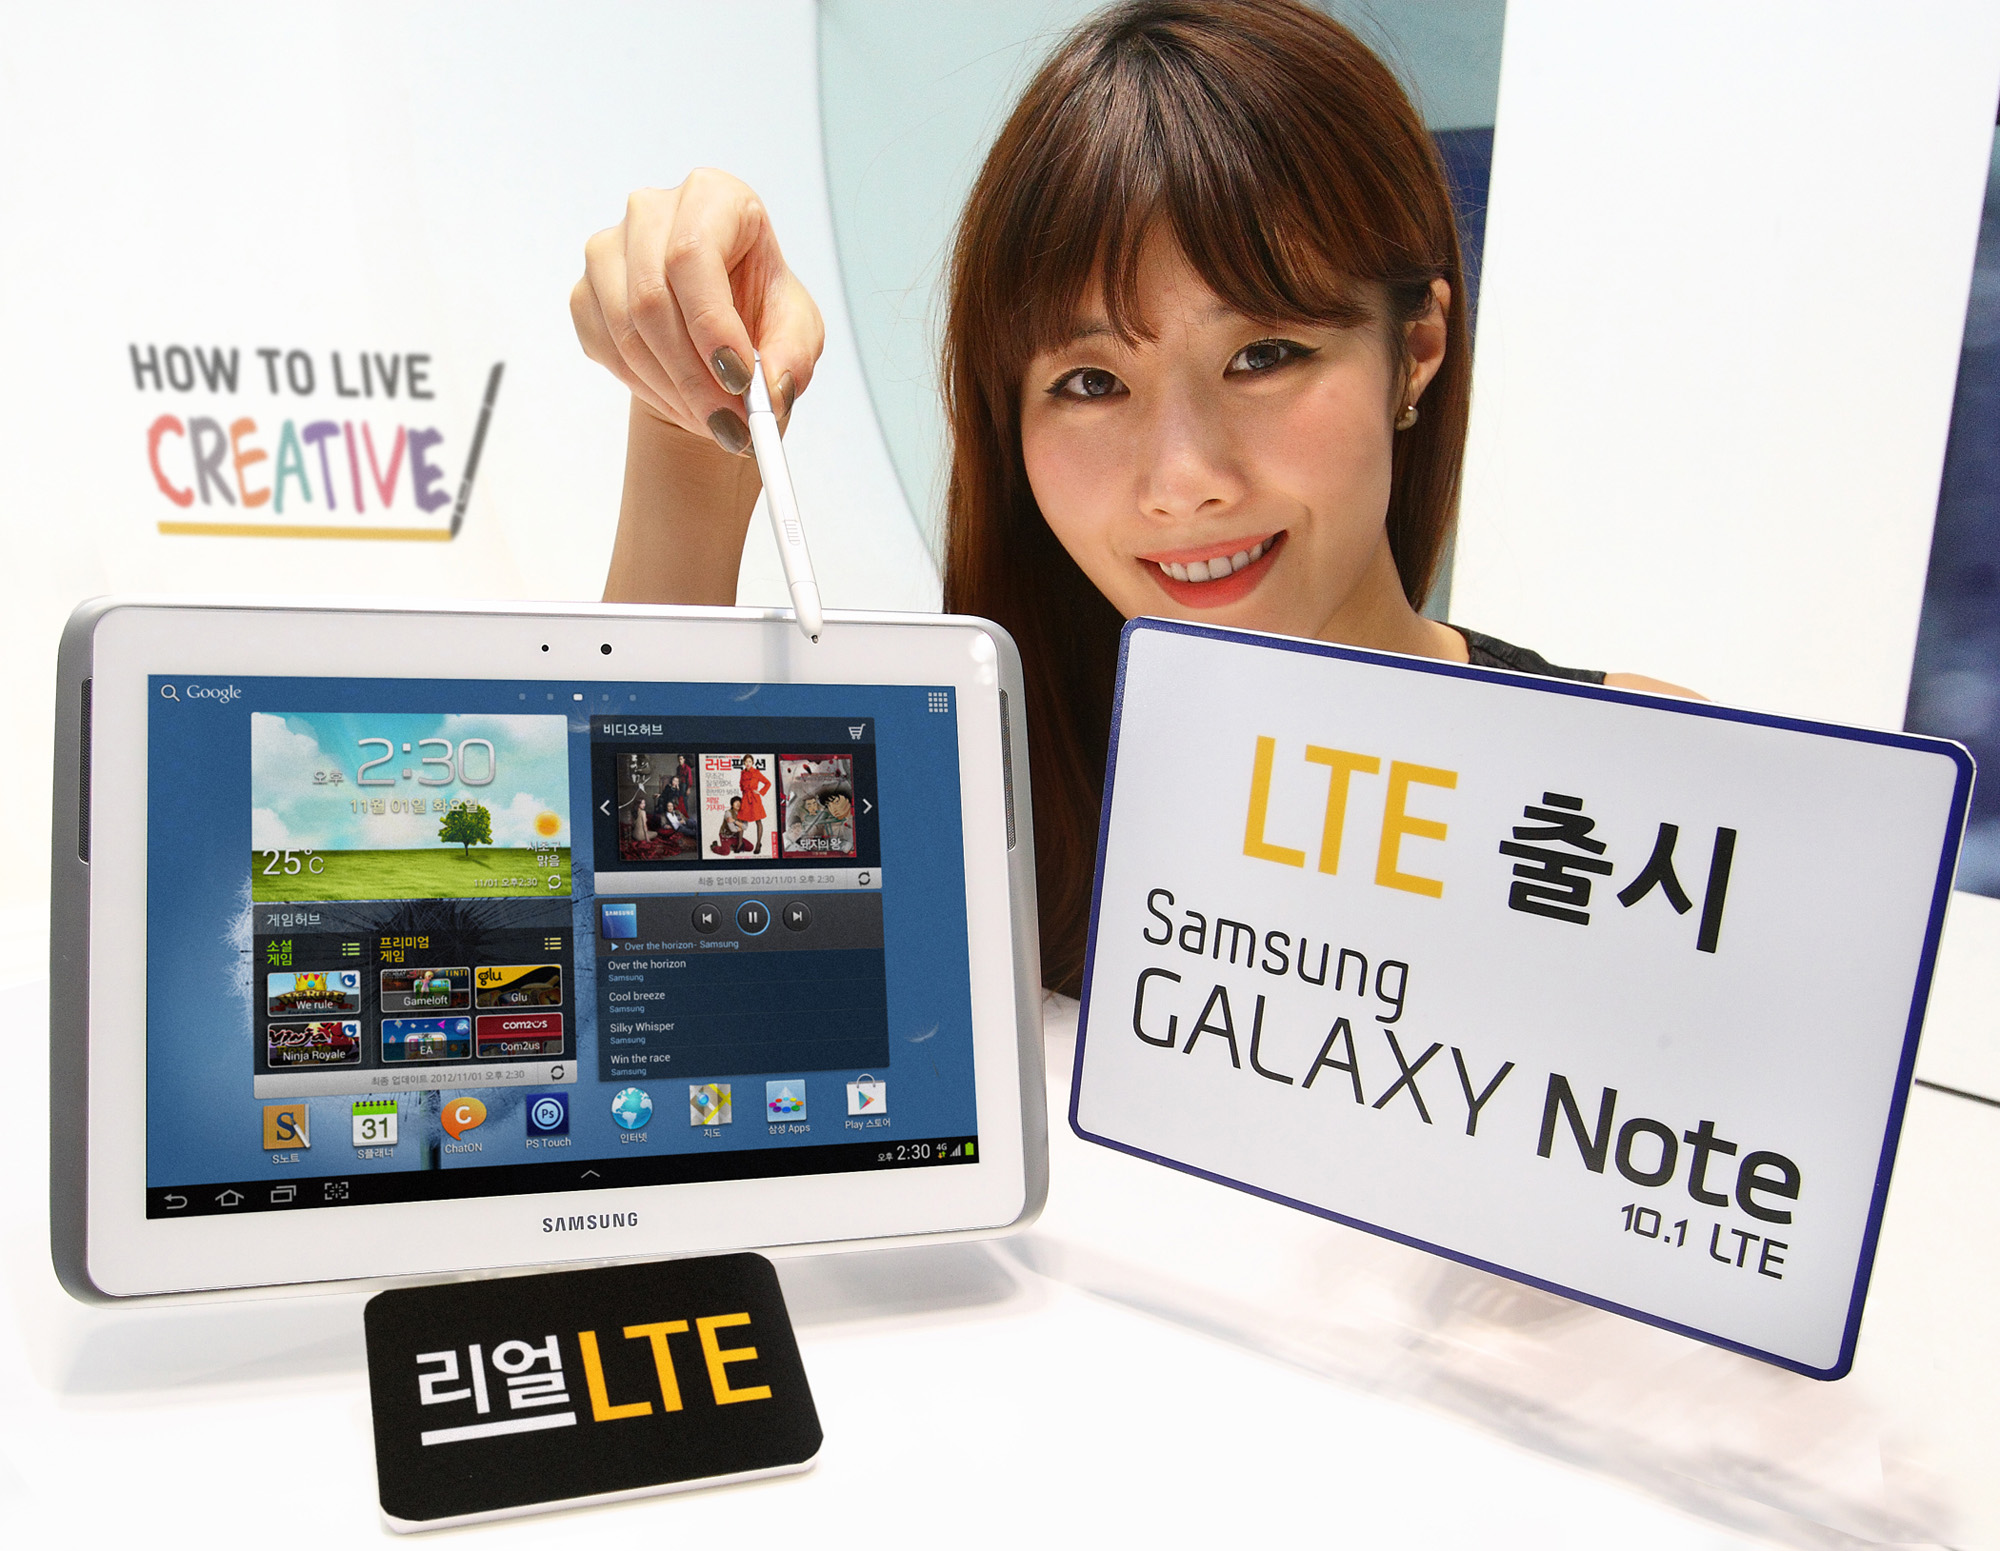 Galaxy Note 10.1 LTE